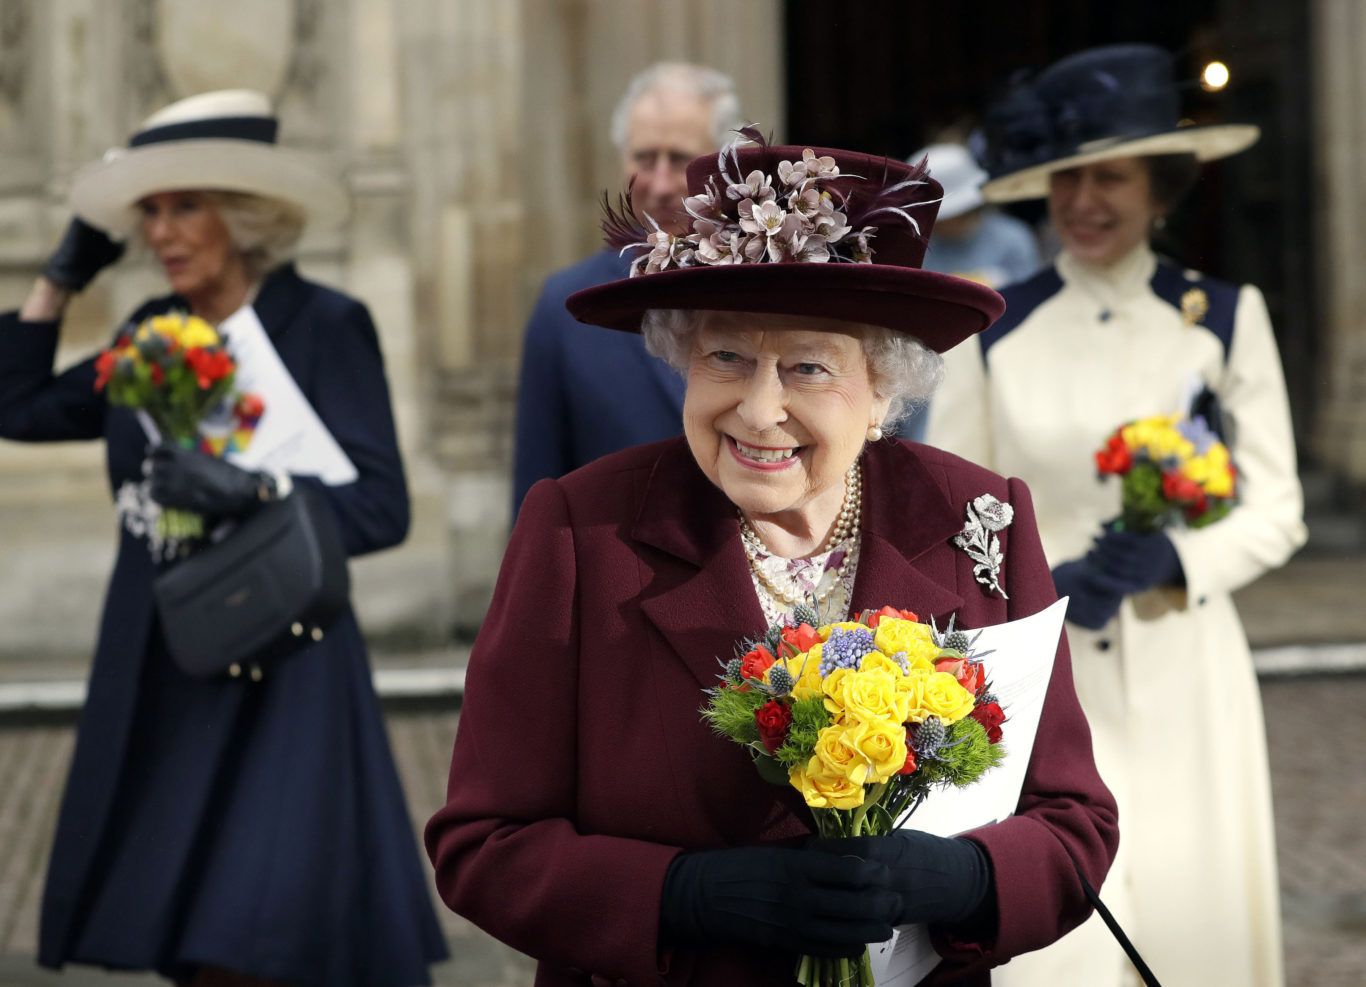 The Queen as she leaves the Commonwealth service (Kirsty Wigglesworth/PA)